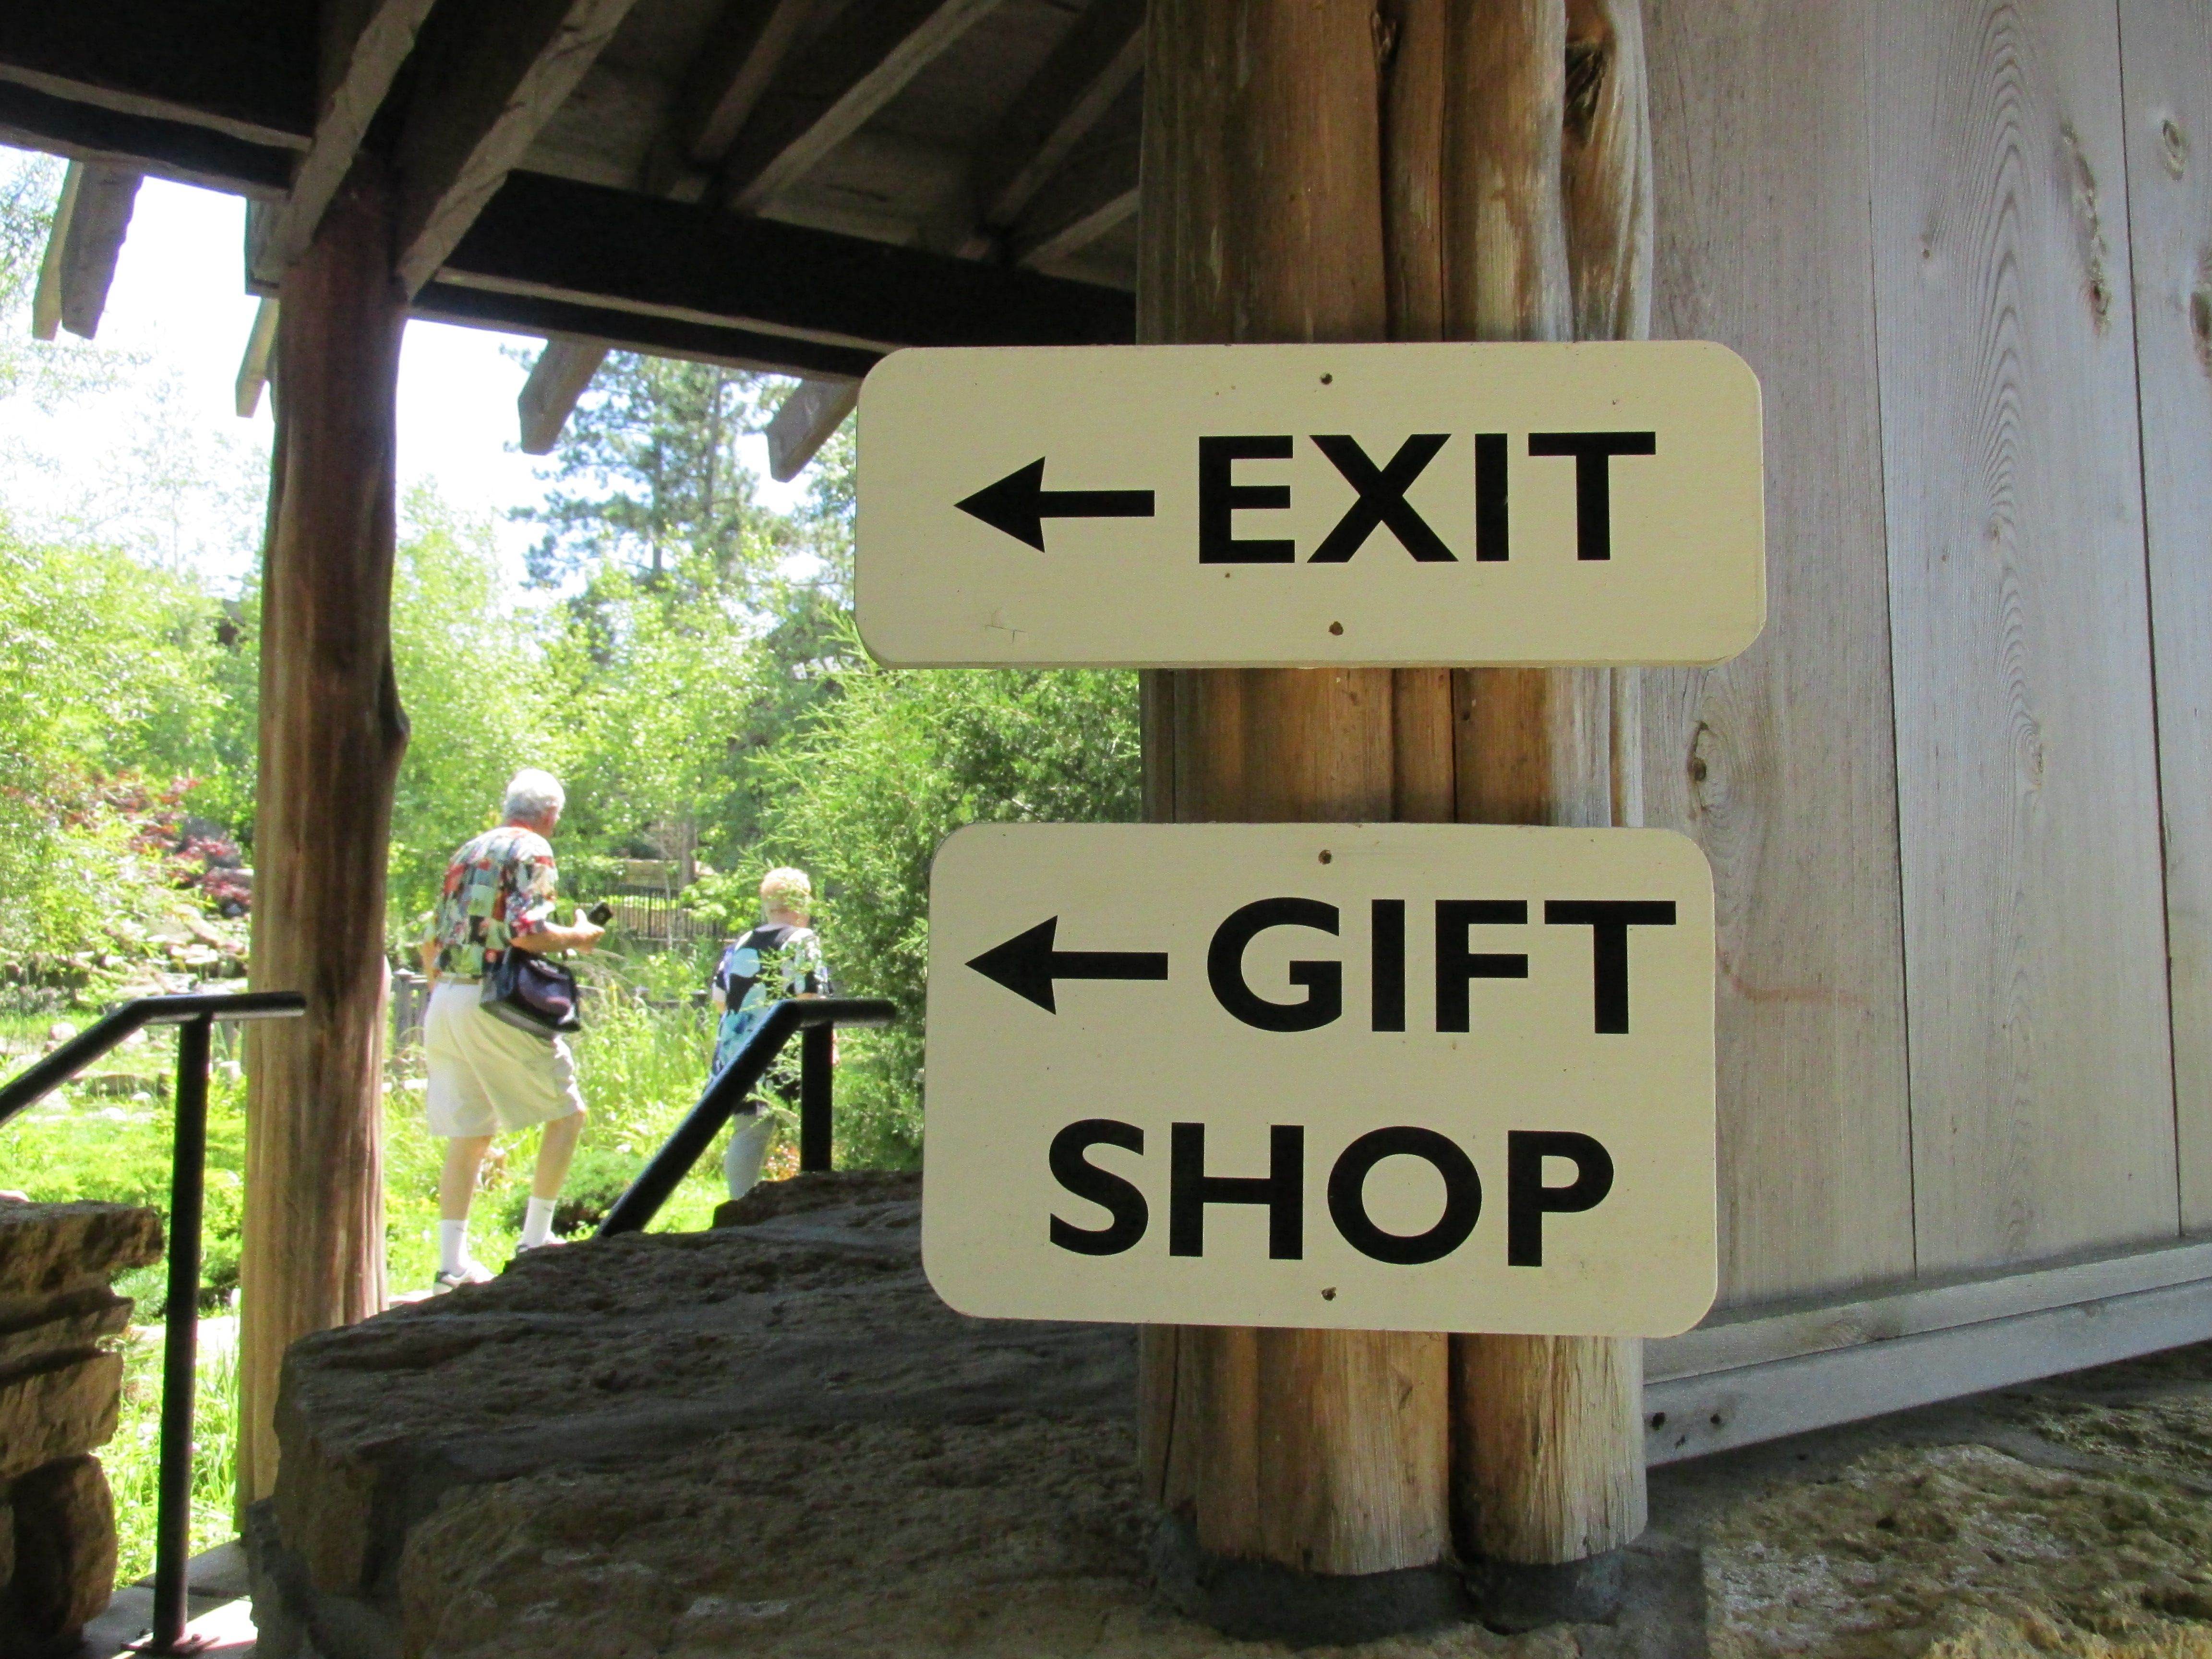 Exit through the gift shop, of course.